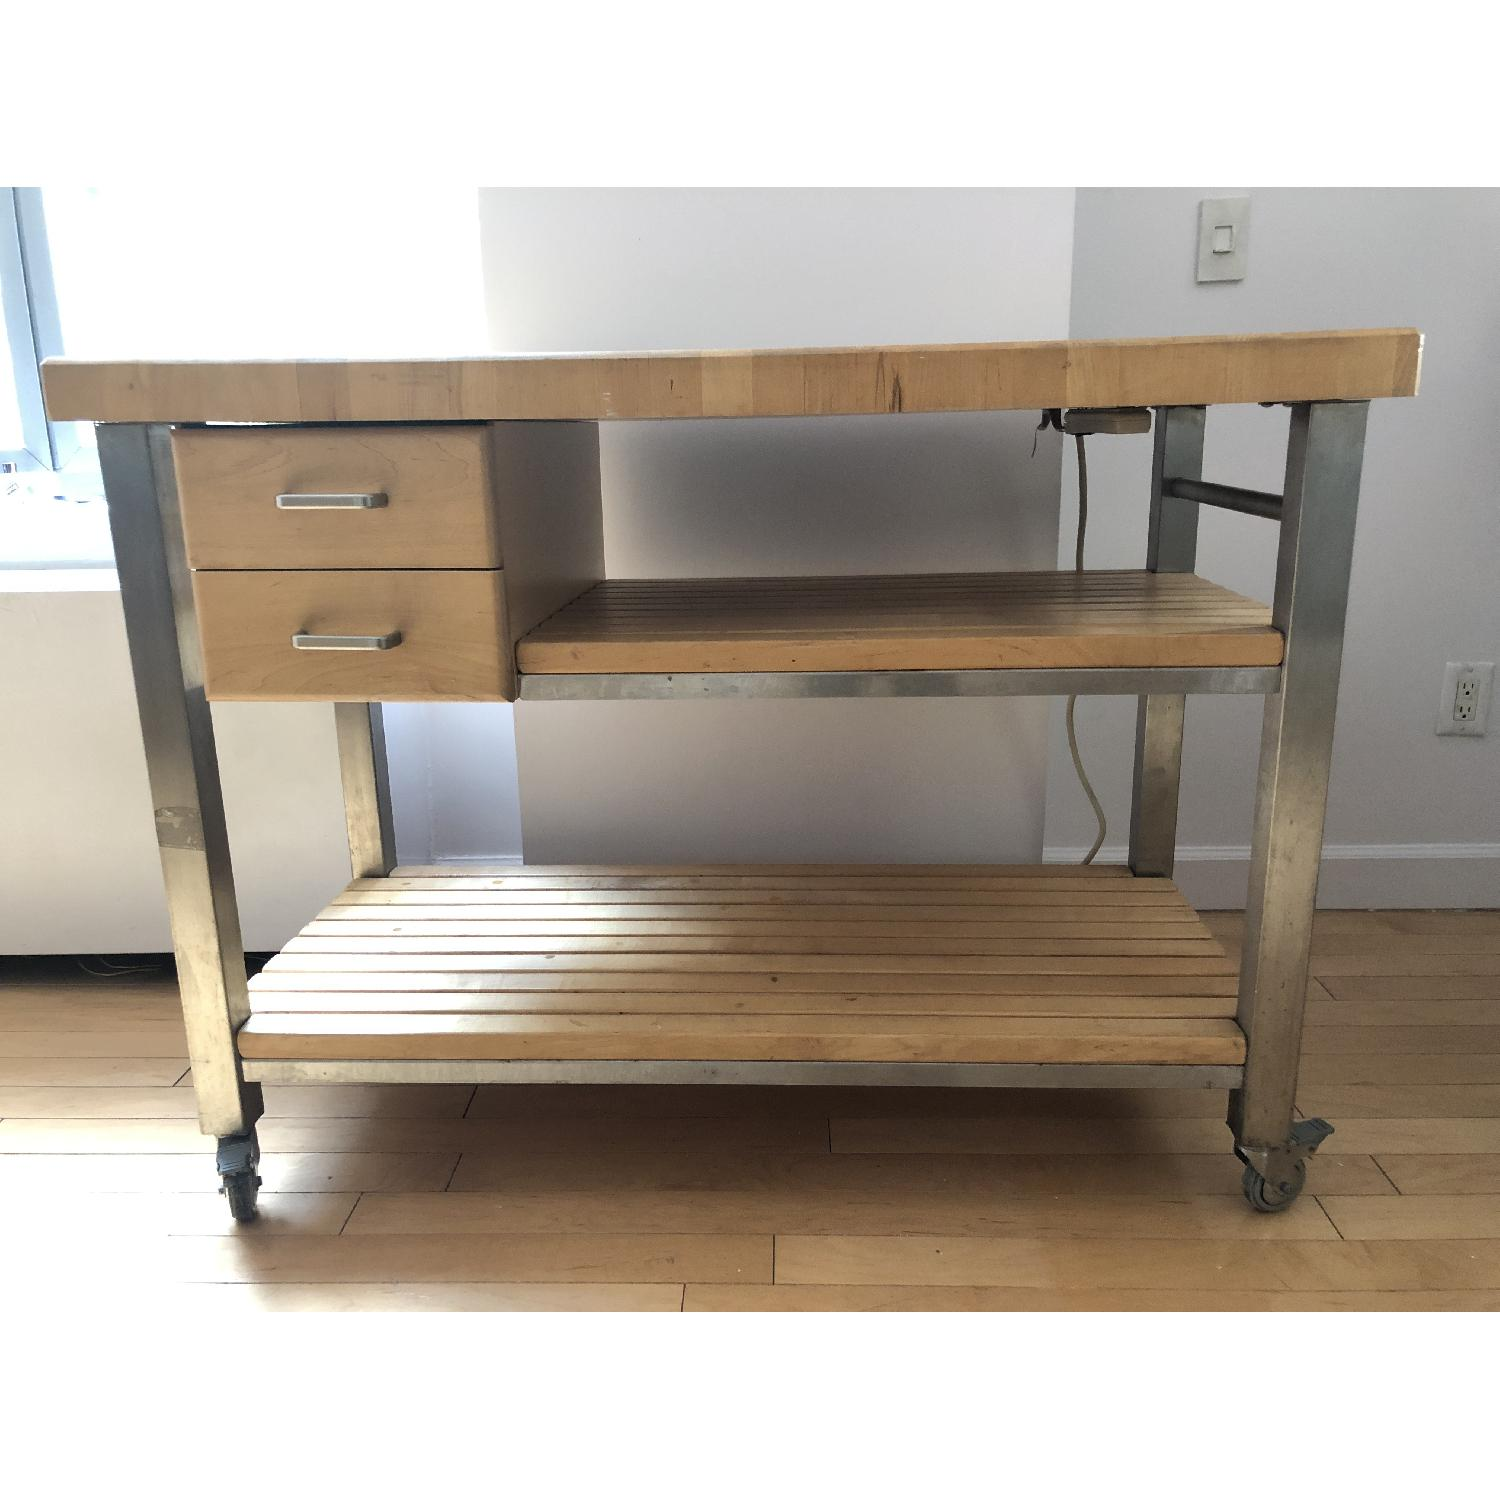 John Boos End-Grain Butcher Block Kitchen Island Cart